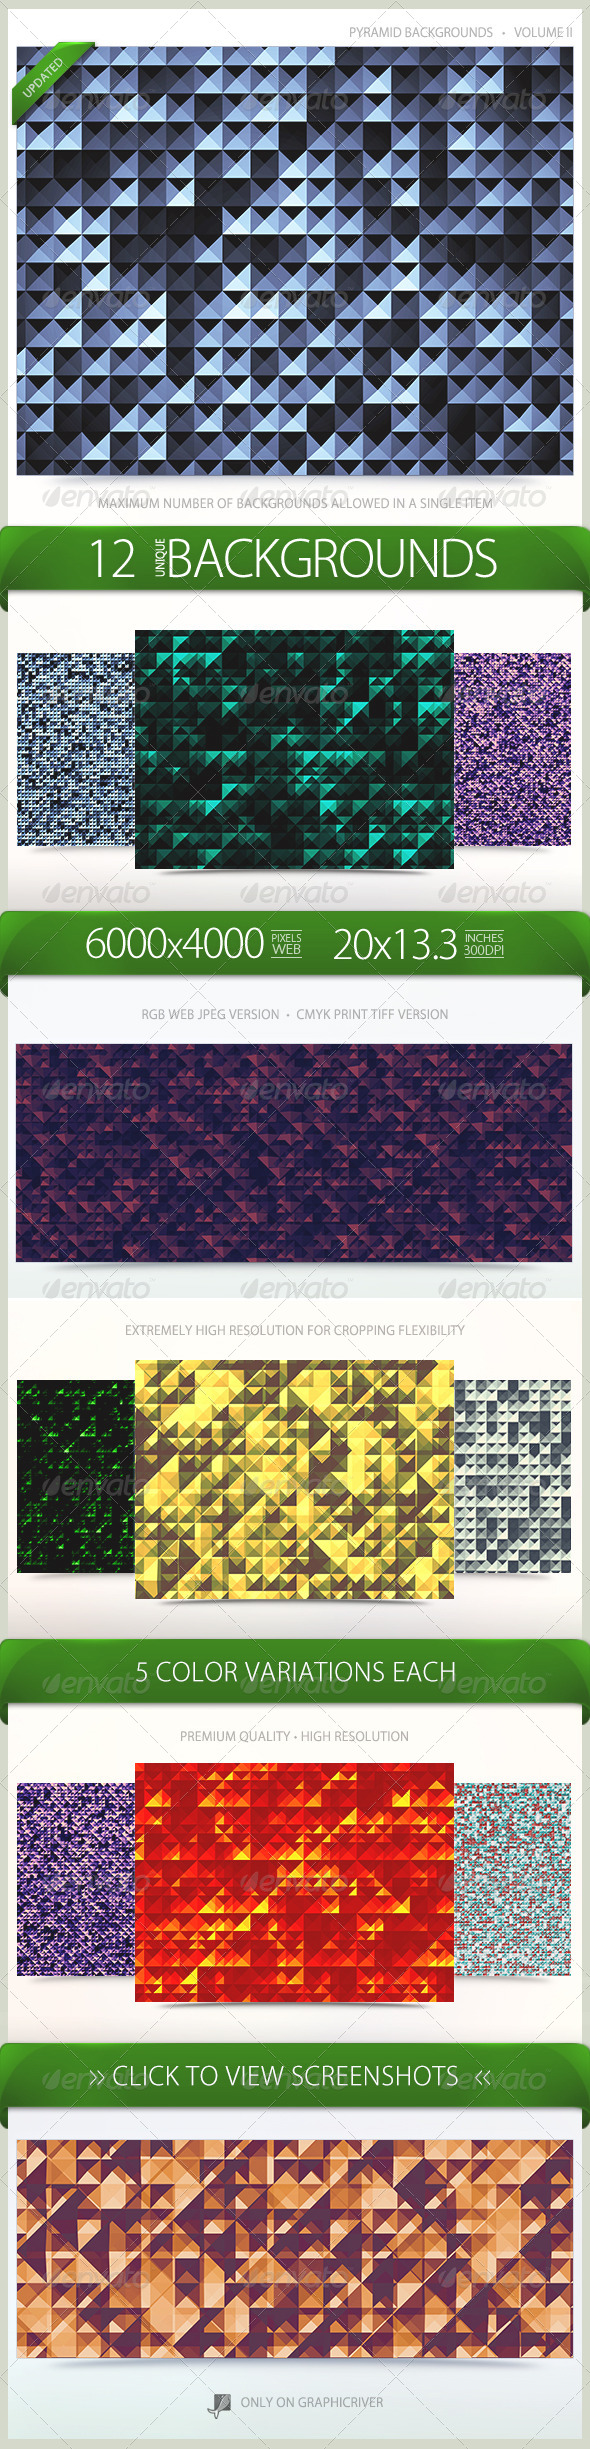 Pyramid Backgrounds Volume 2 - Patterns Backgrounds